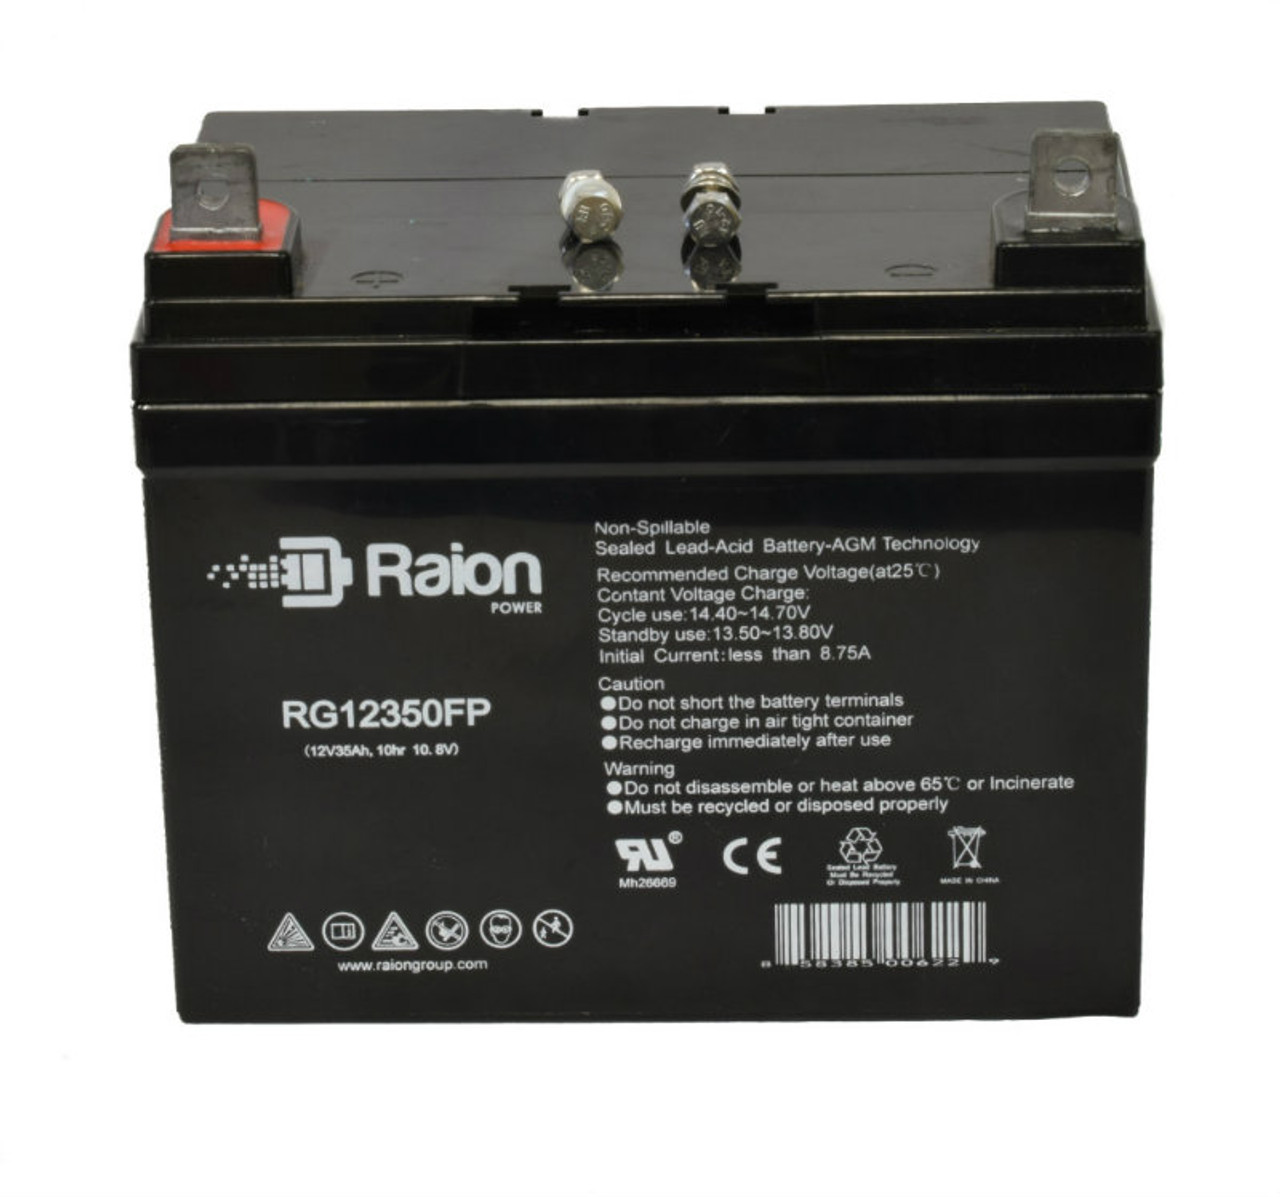 RG12350FP Sealed Lead Acid Battery Pack For Bruno Shoprider Streamer Compact Mobility Scooter